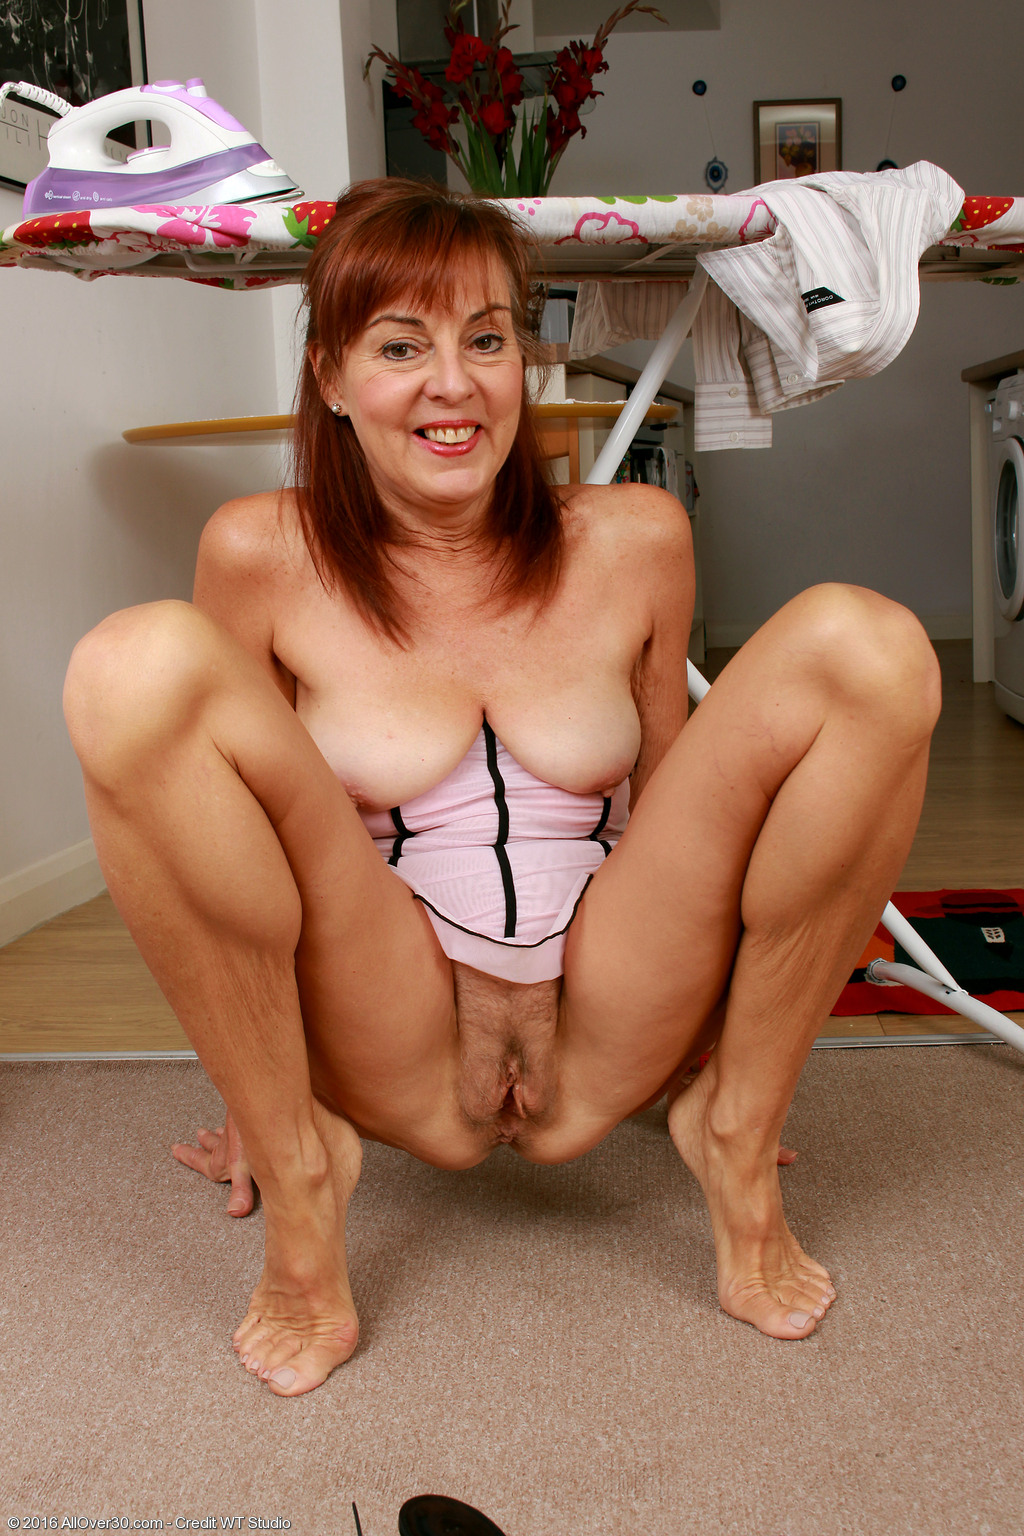 Mature over 30 videos | Milf | XXX videos